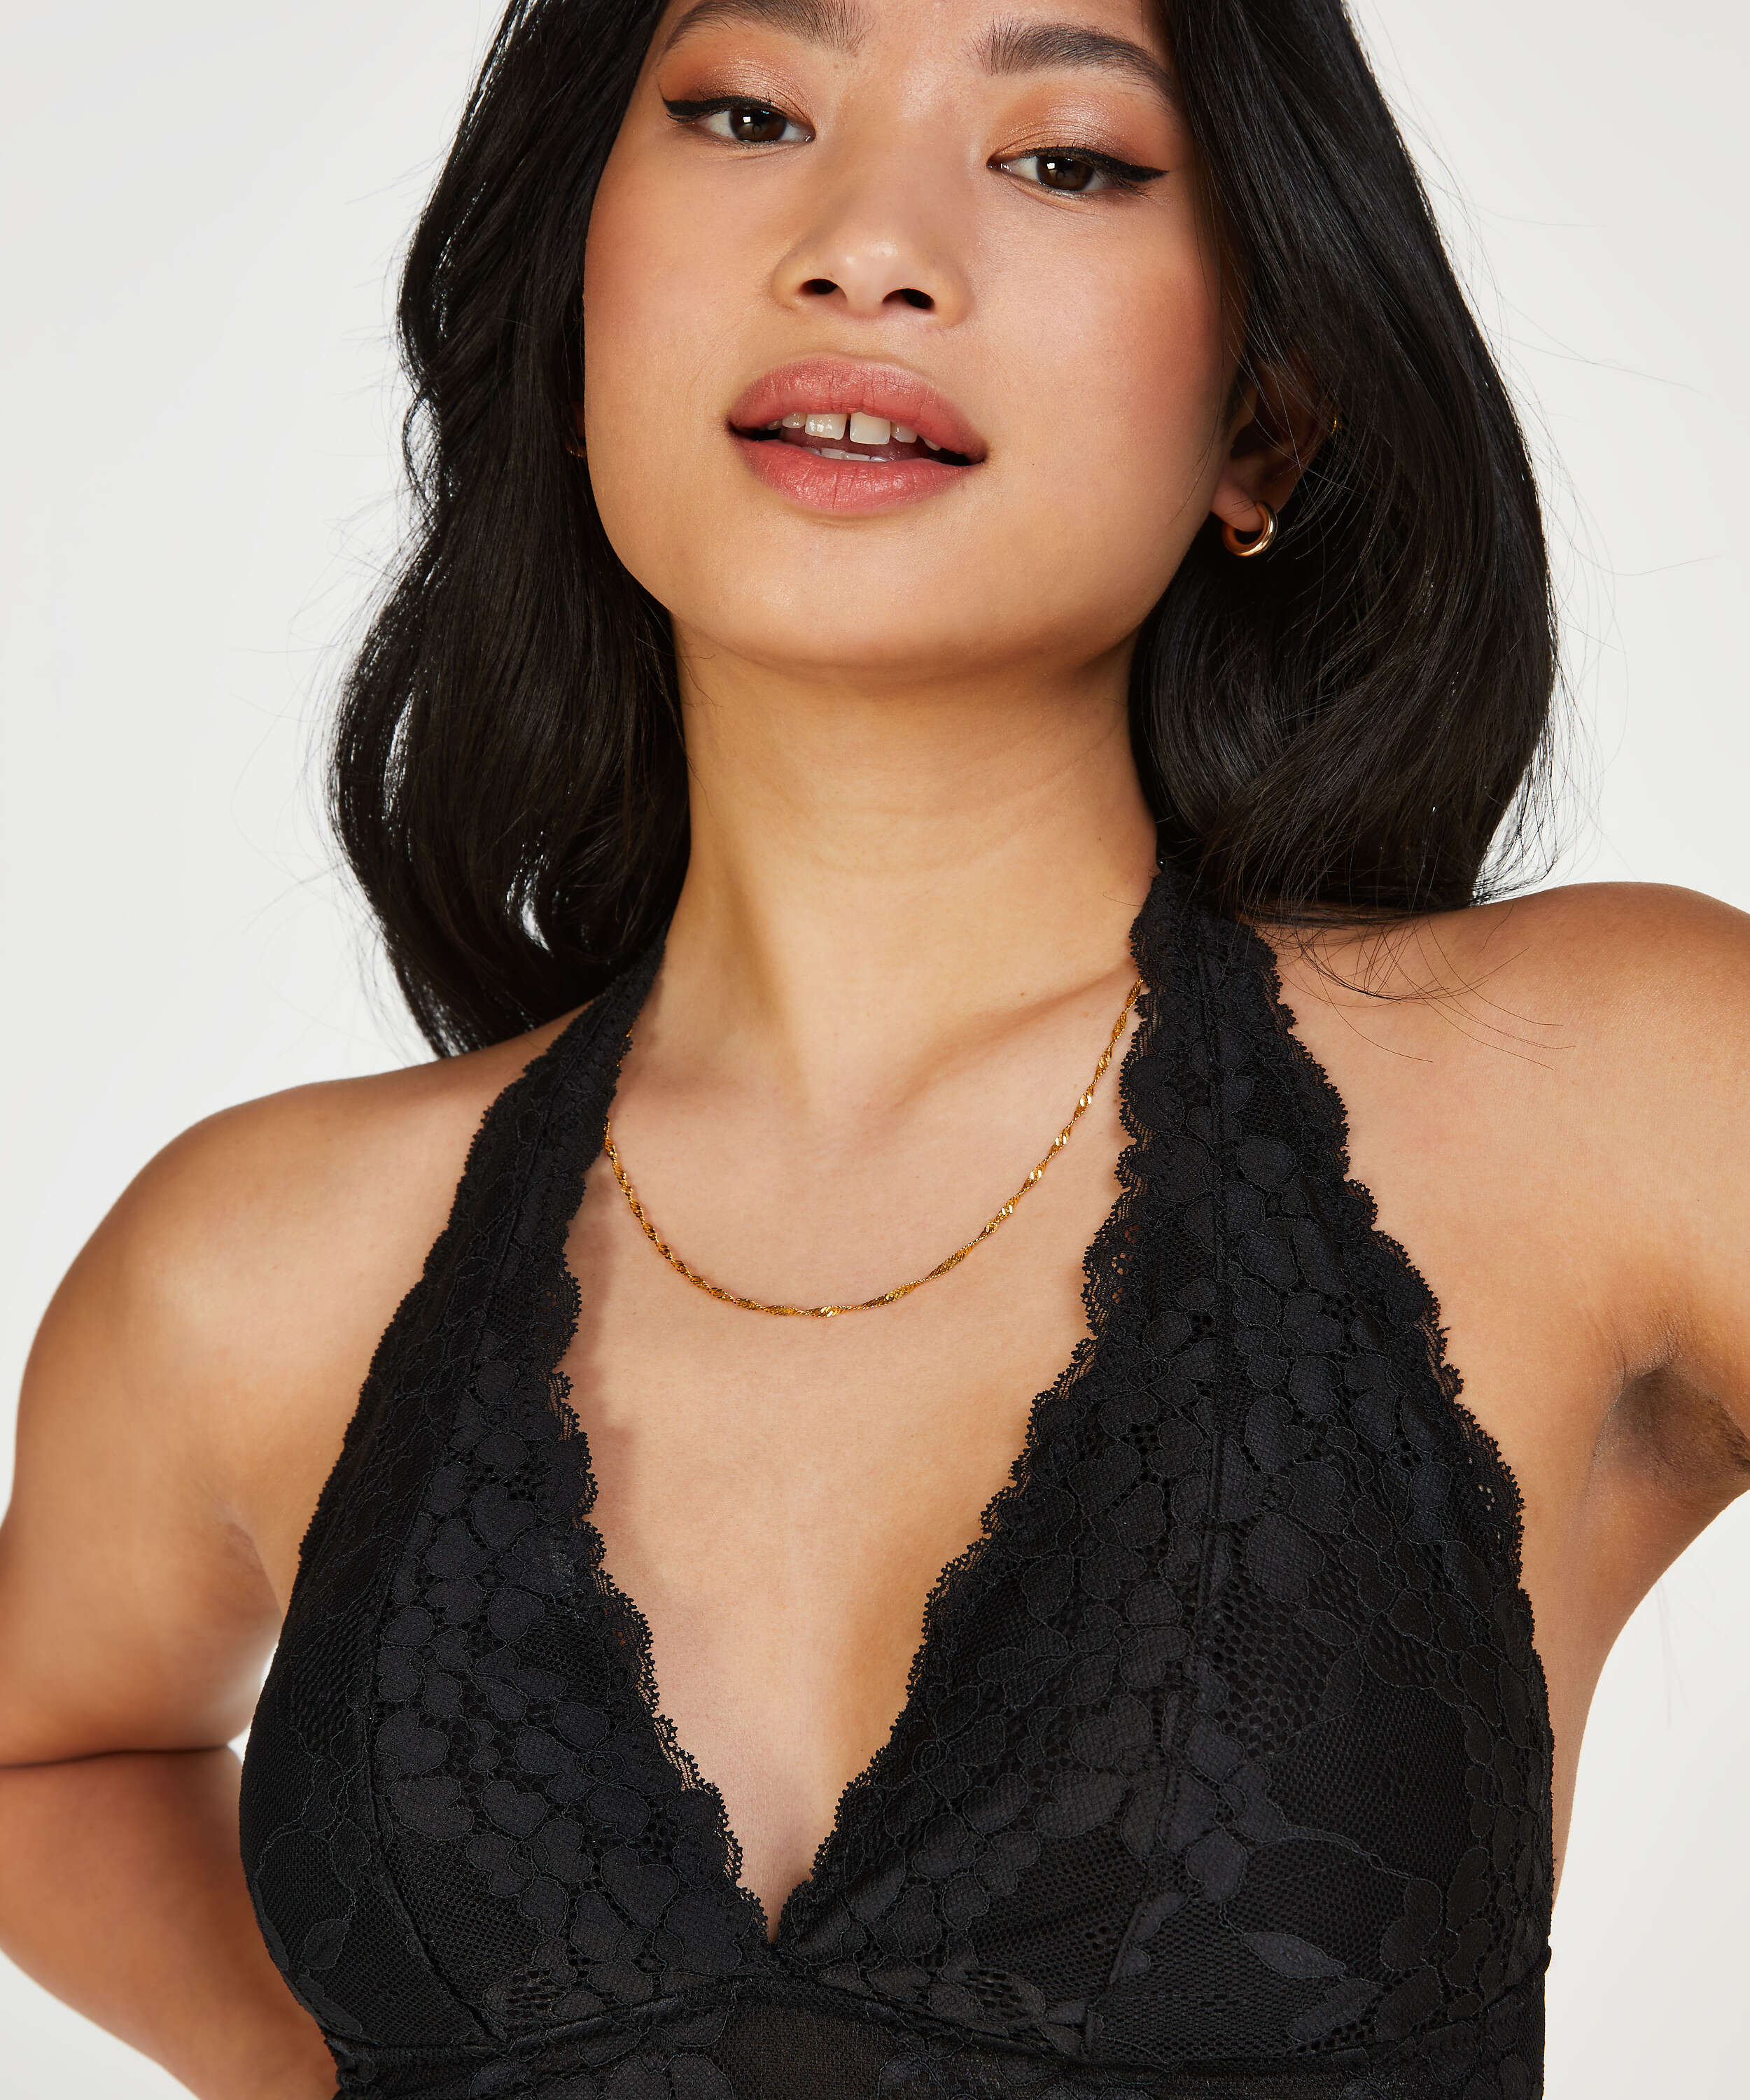 Rosalyn Padded Halter Bralette, Black, main